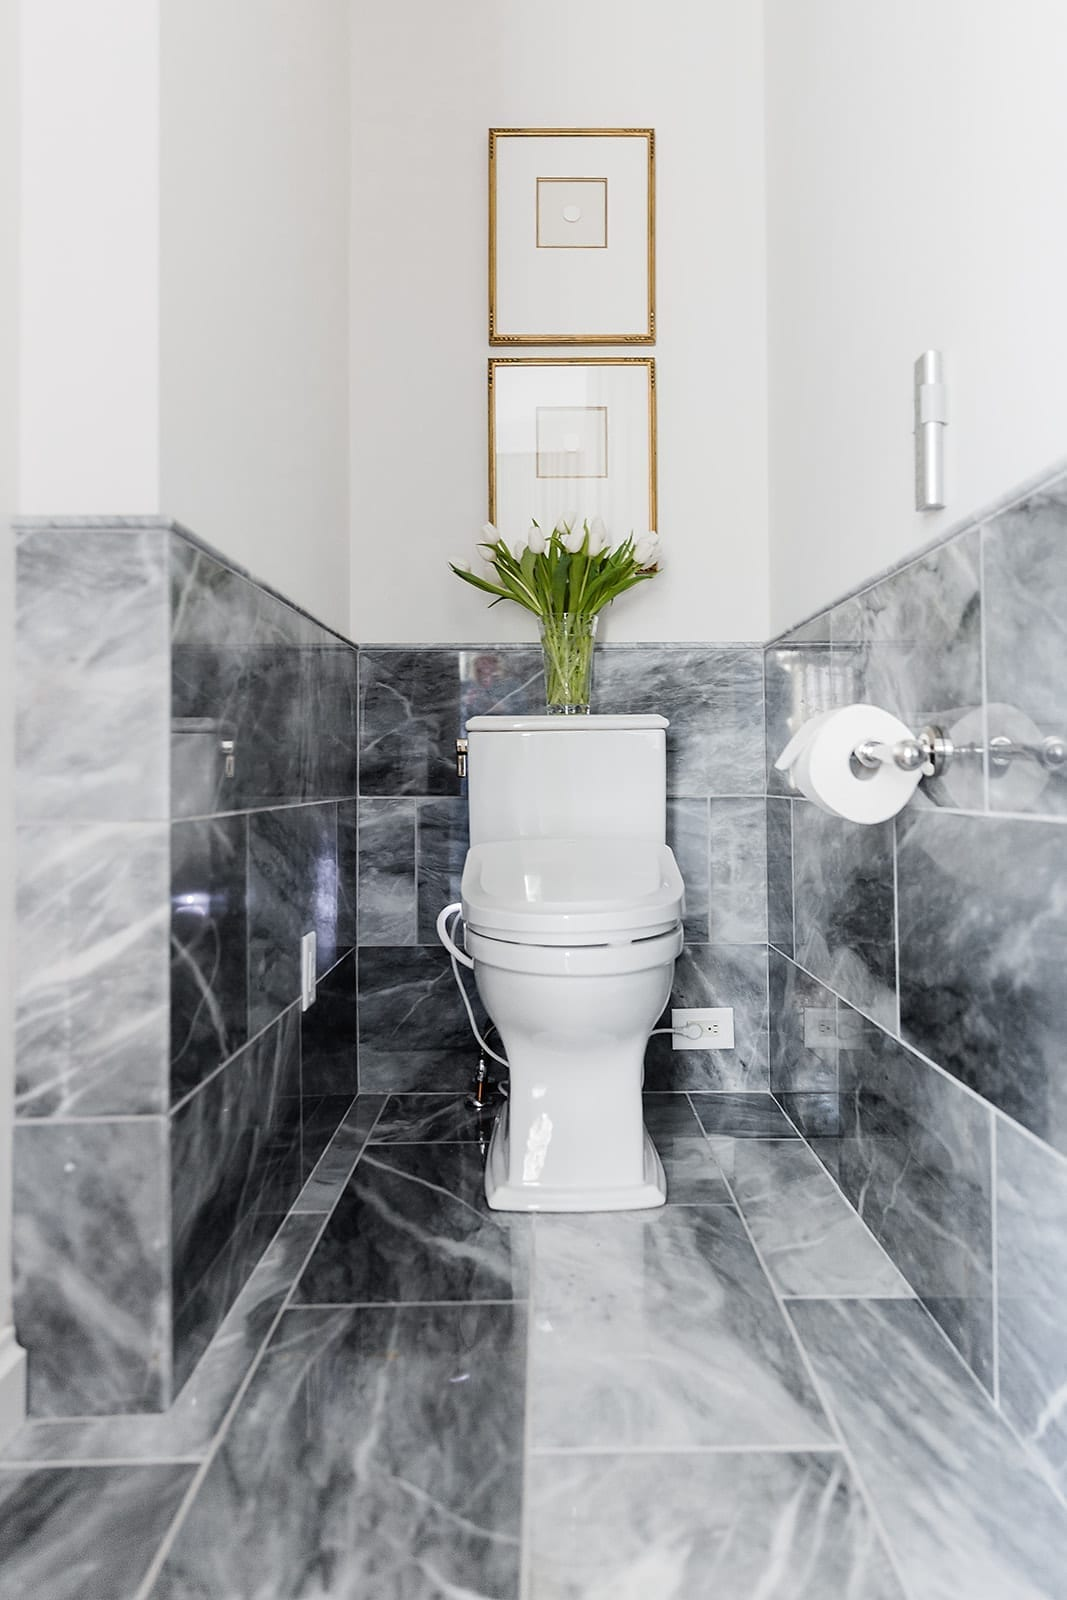 TOTO Toilet in master bathroom. Bardiglio marble floor and splash with Intaglio frames.